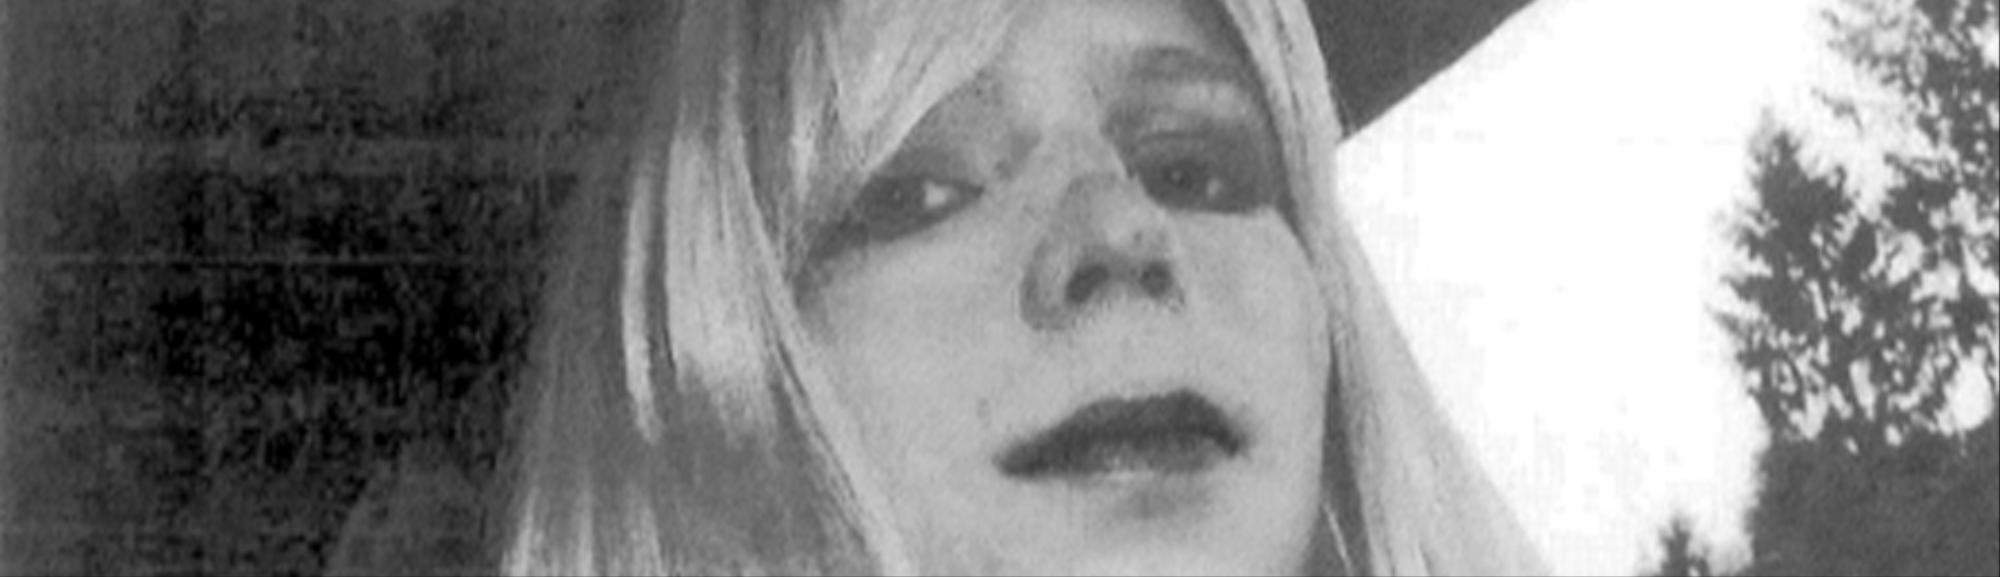 Chelsea Manning could get indefinite solitary confinement after attempting suicide